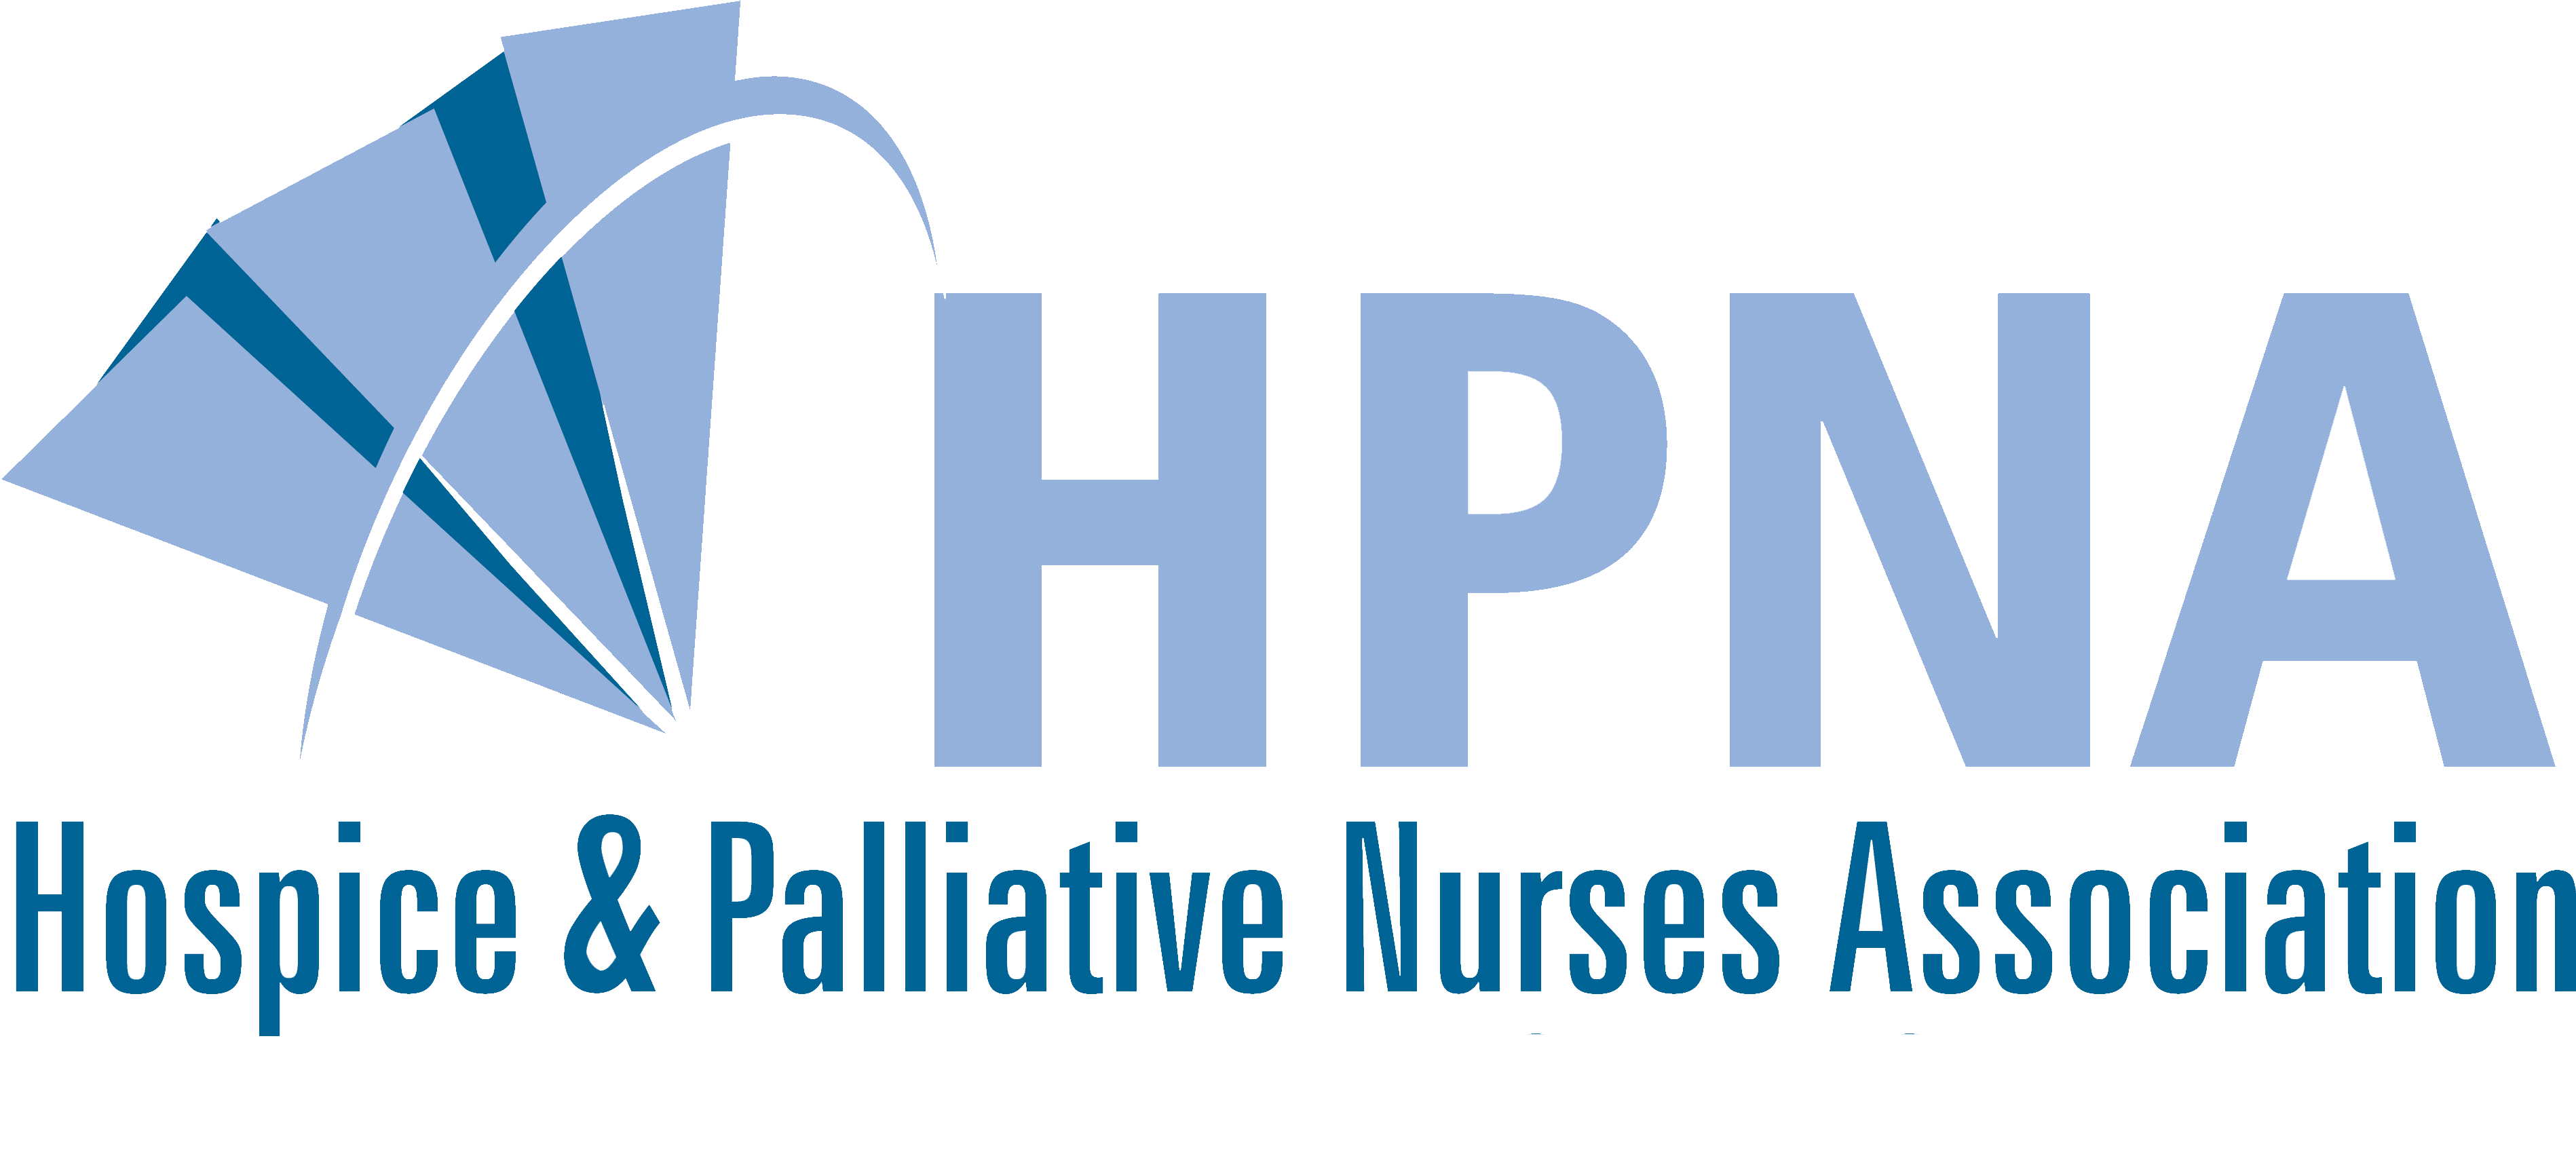 Hospice & Palliative Nurses Association